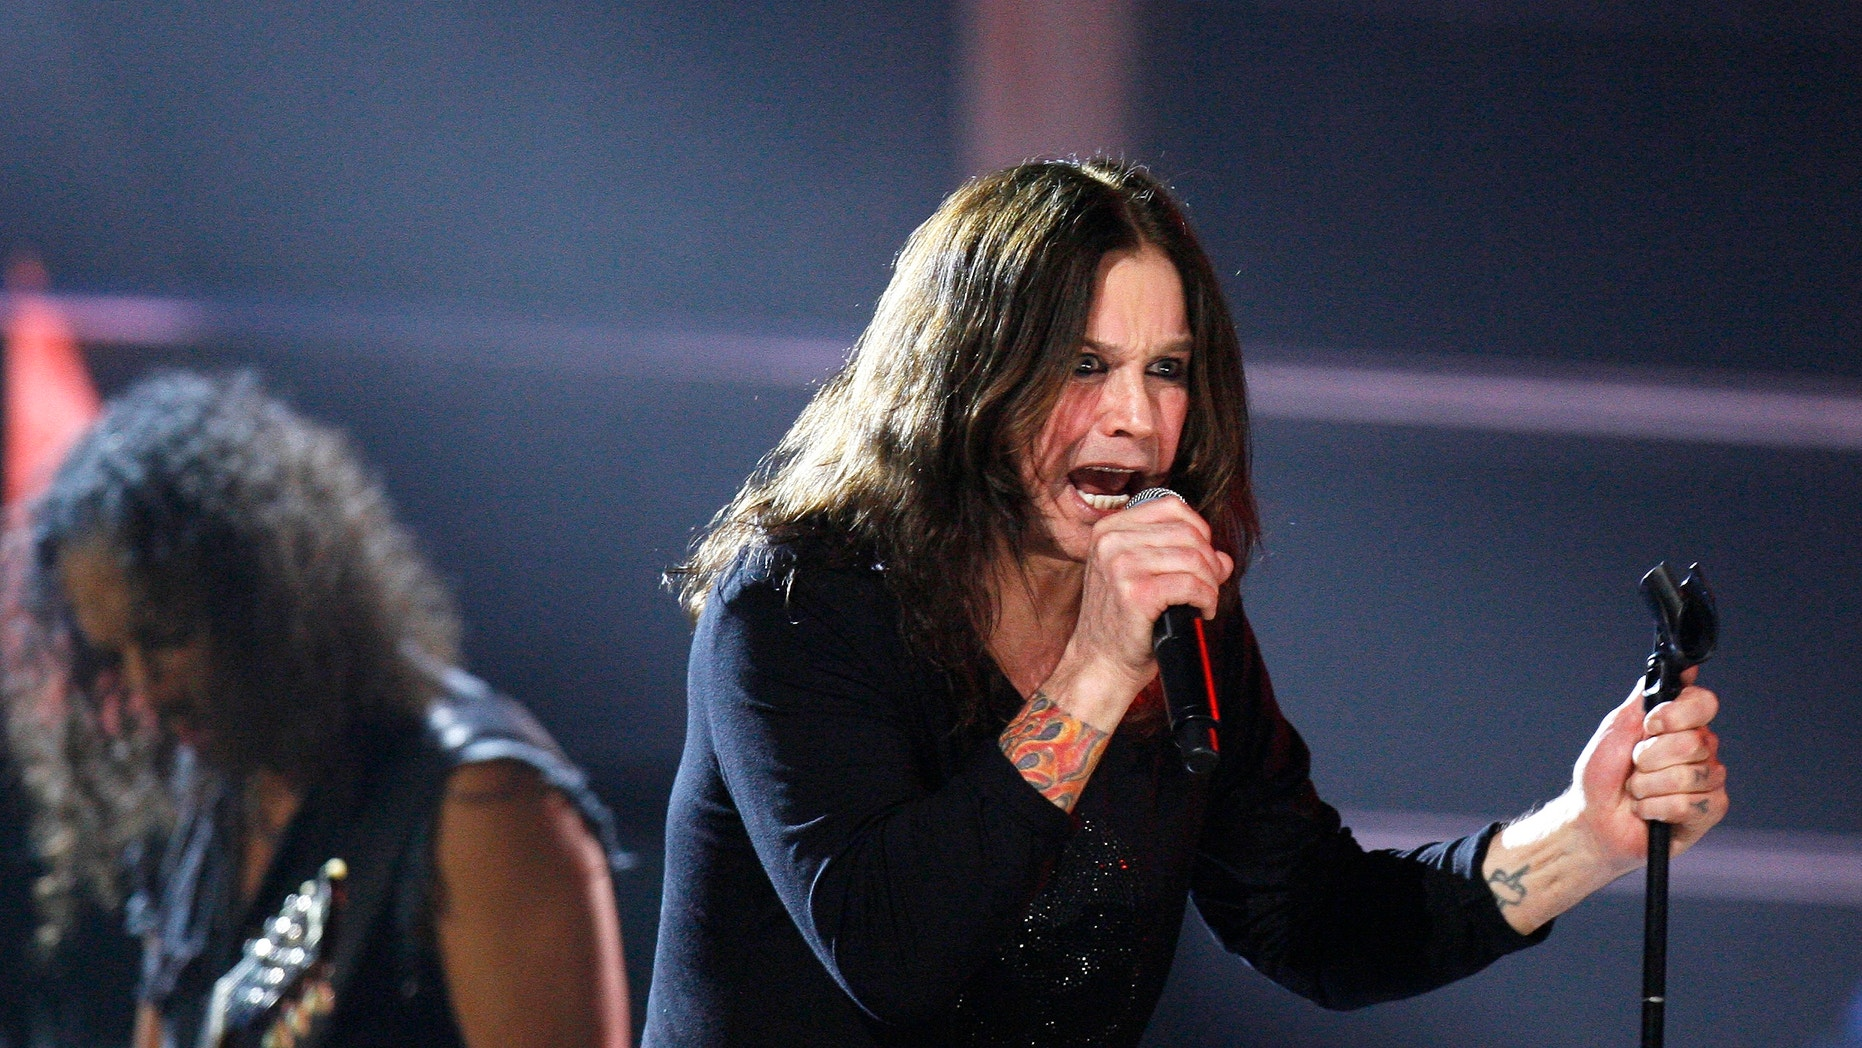 Ozzy Osbourne performs with the band Metallica during the second of two 25th Anniversary Rock & Roll Hall of Fame concerts in New York on October 30, 2009.